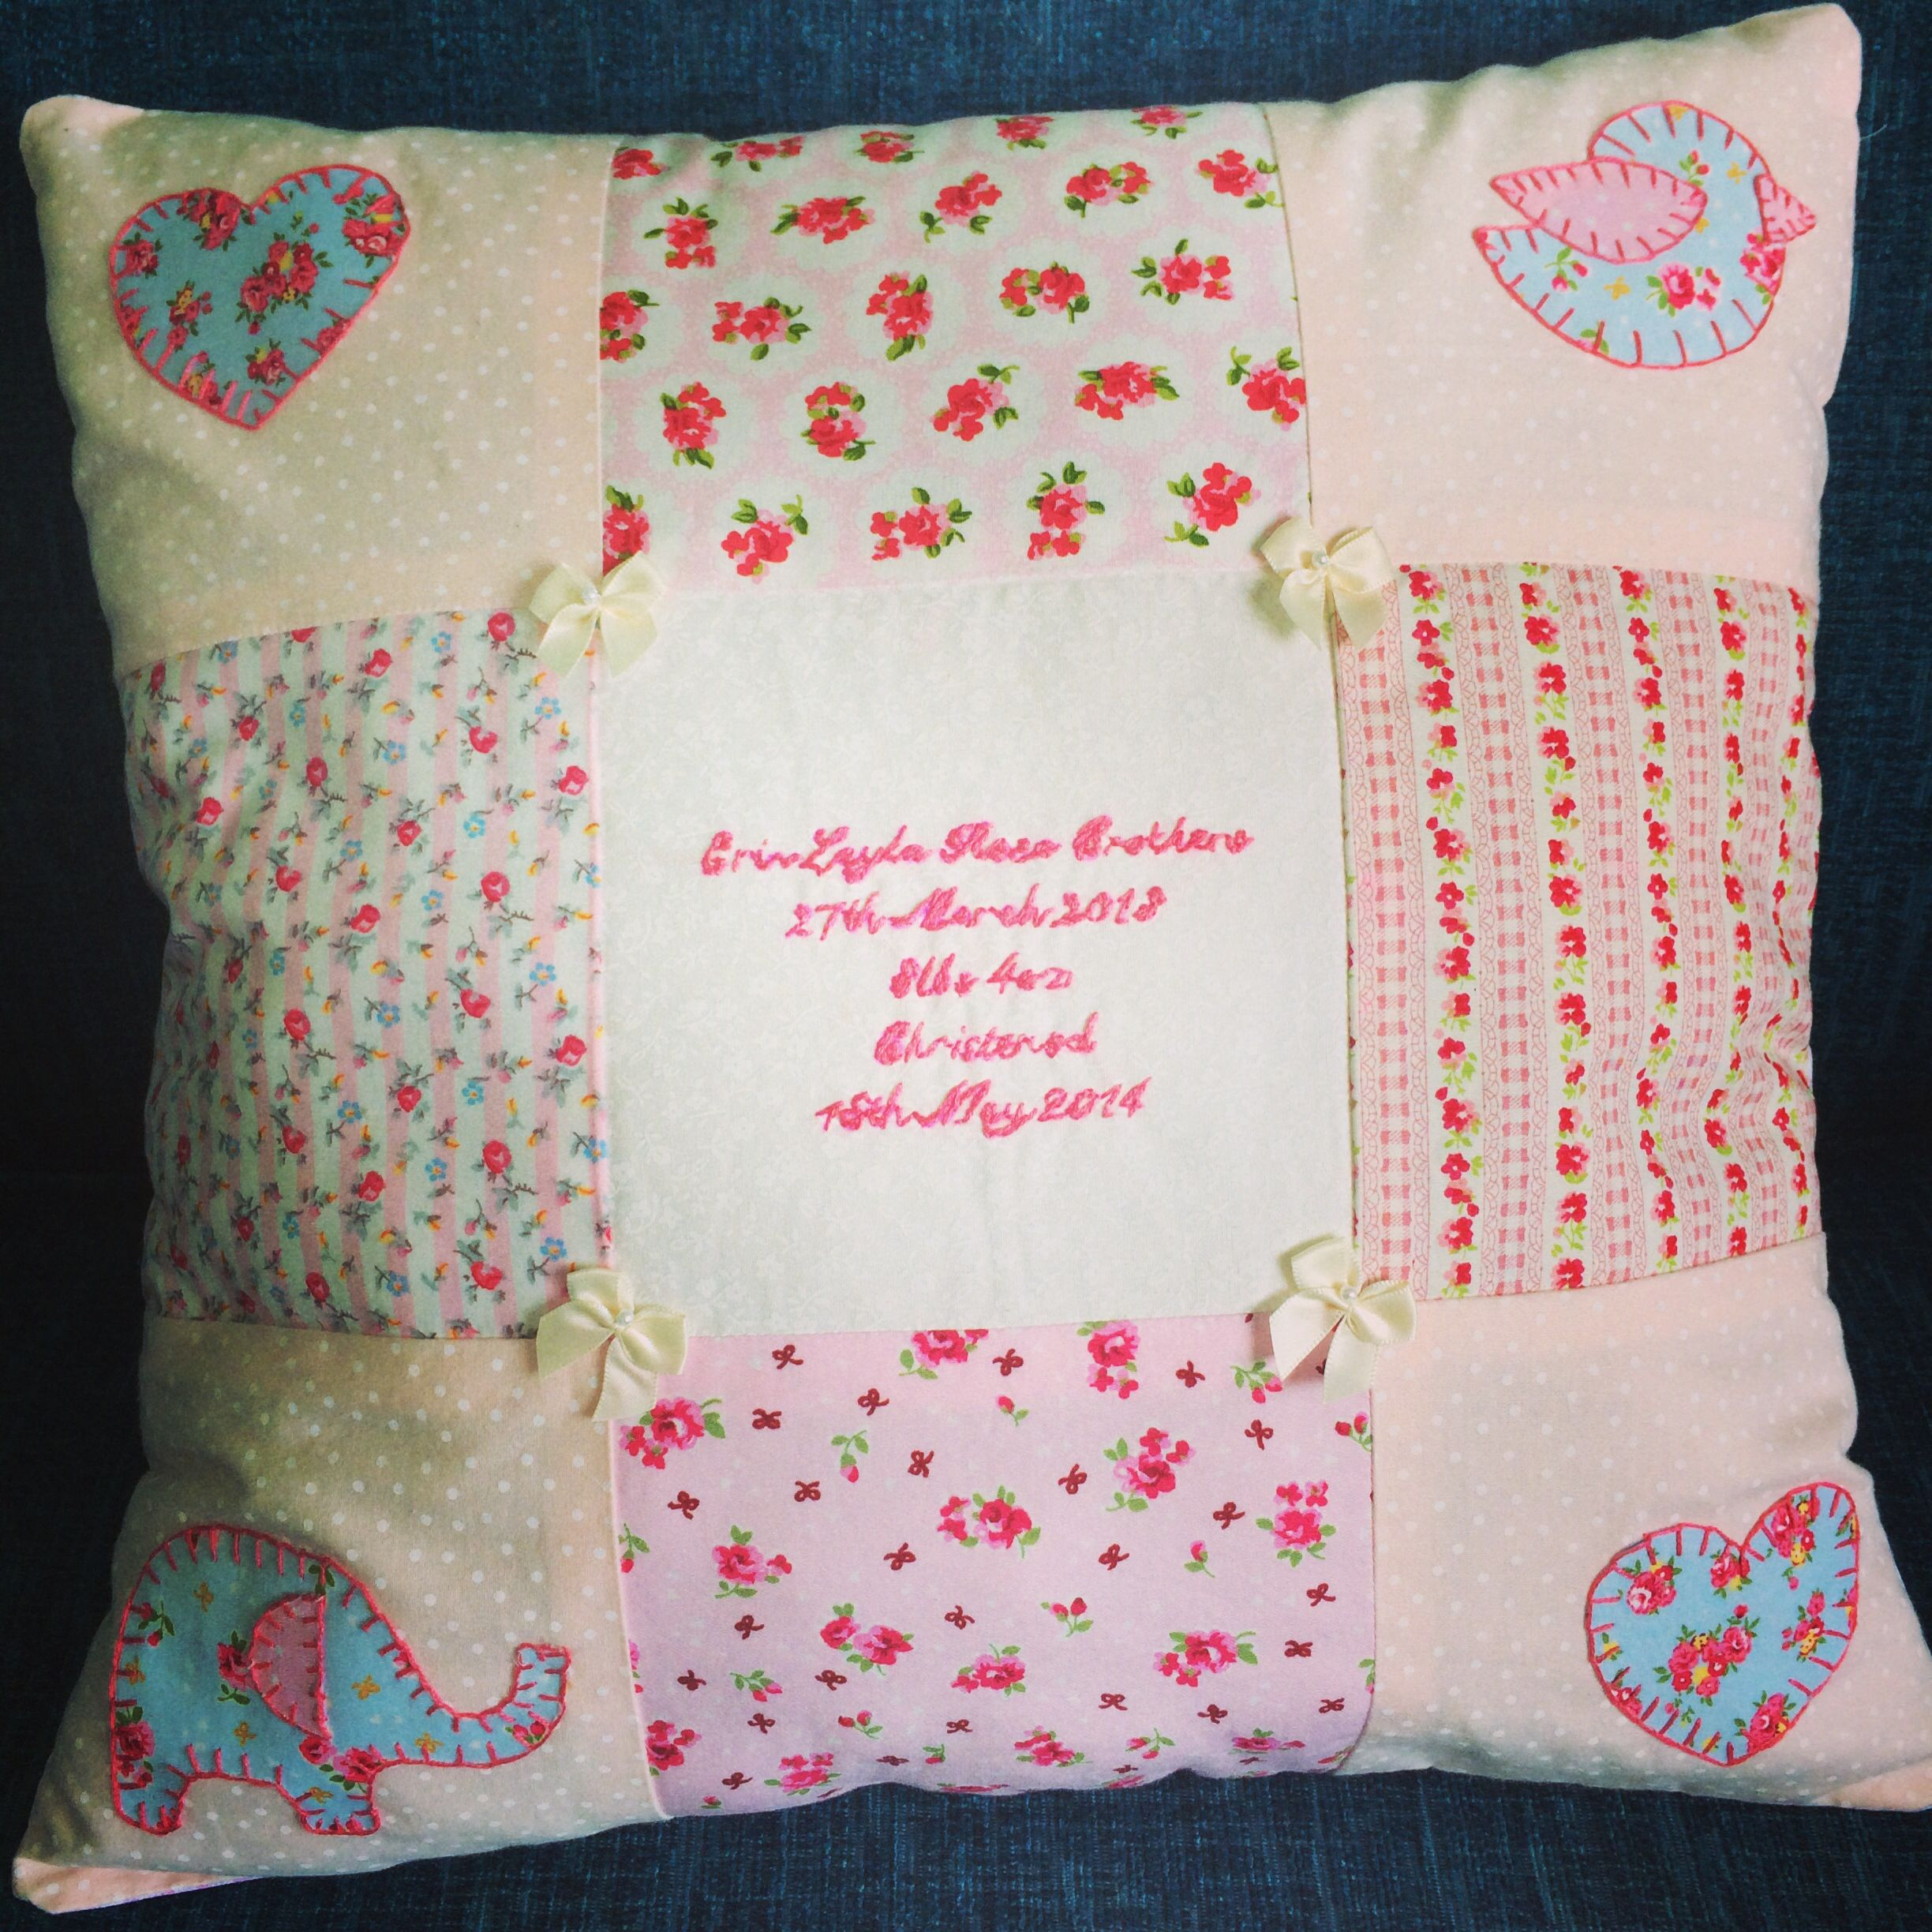 Christeningbirth Cushion Made To Order 3000 Made By Ms Knit